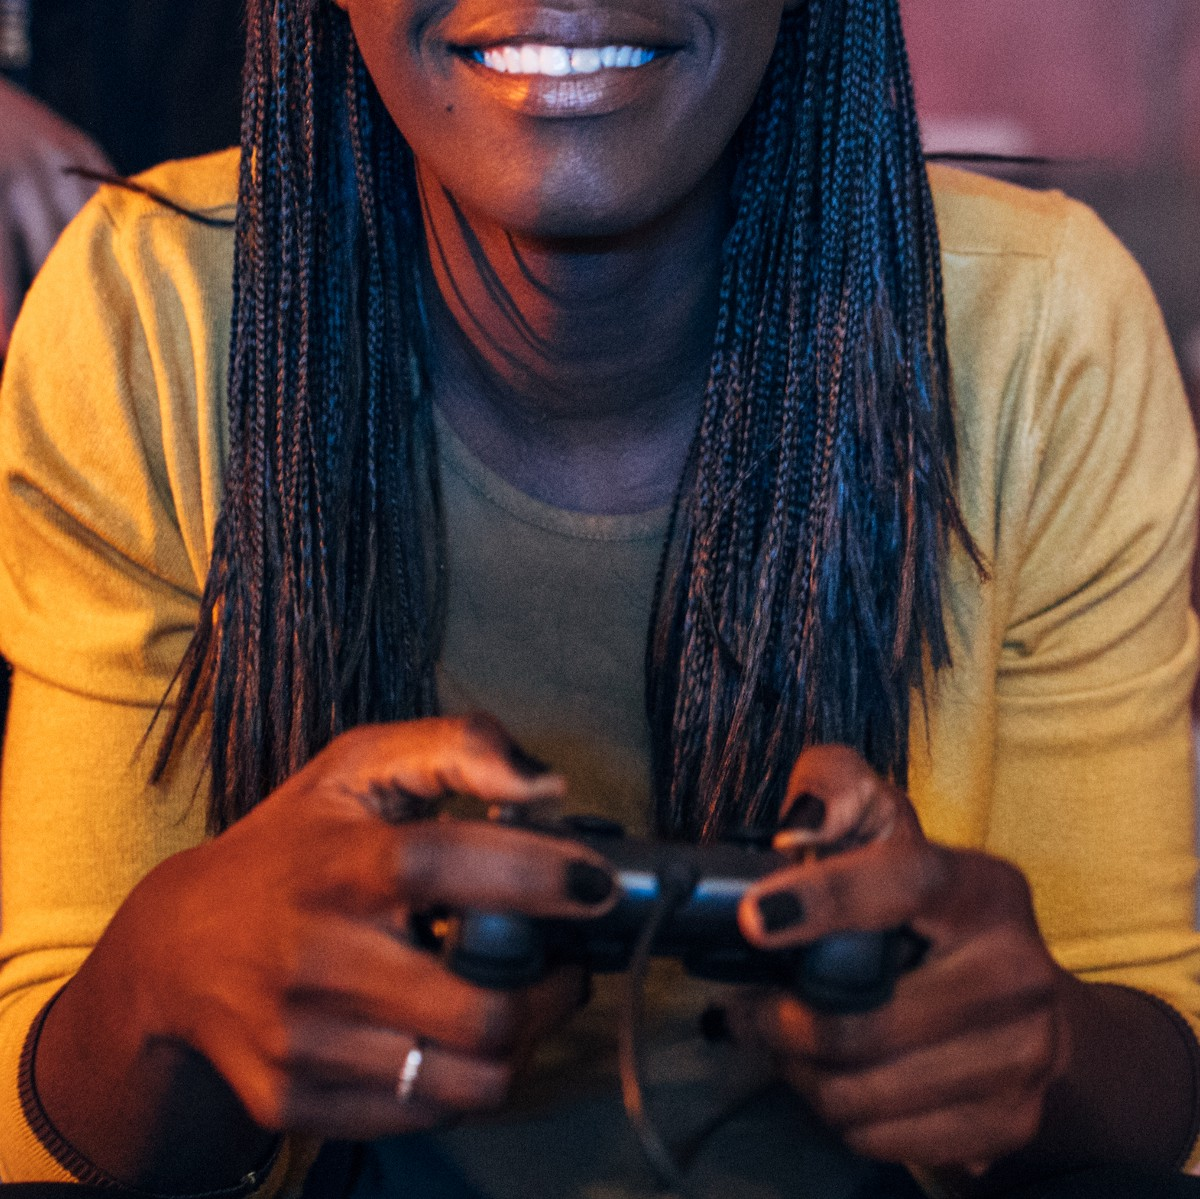 These Black Women Gamers Teamed Up to Take on the Worst